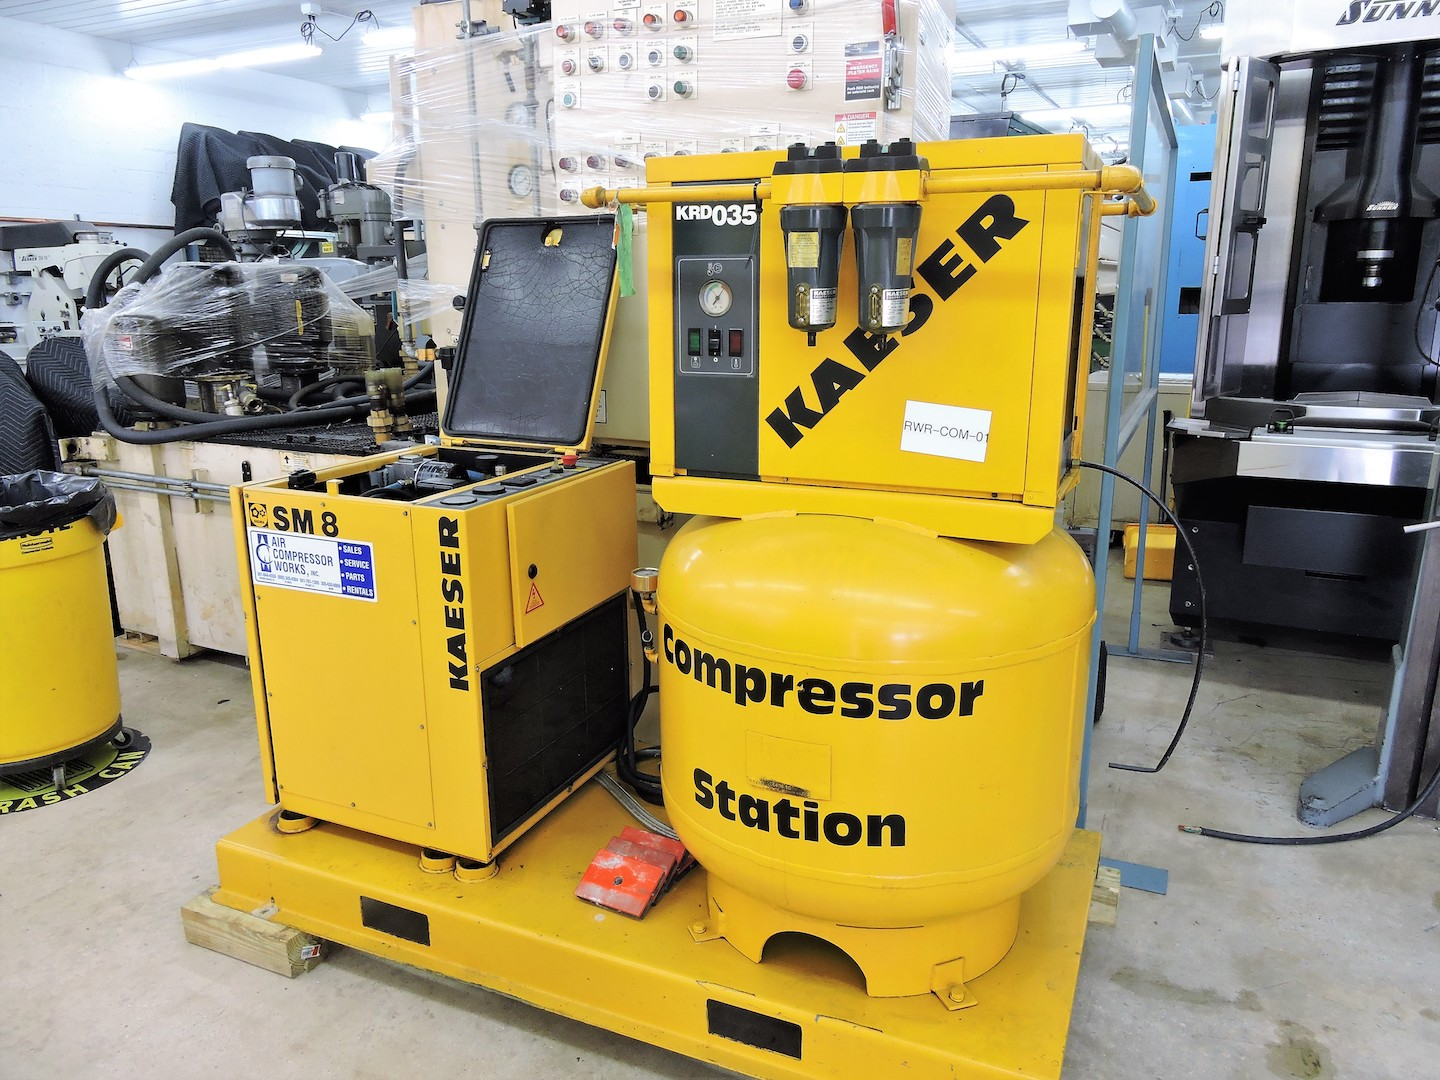 Lot 35 - KAESER 7.5 HP ROTARY SCREW AIR COMPRESSOR; SM-8, W/78 CFM @125 PSI; Oil Injected Rotary Screw End;